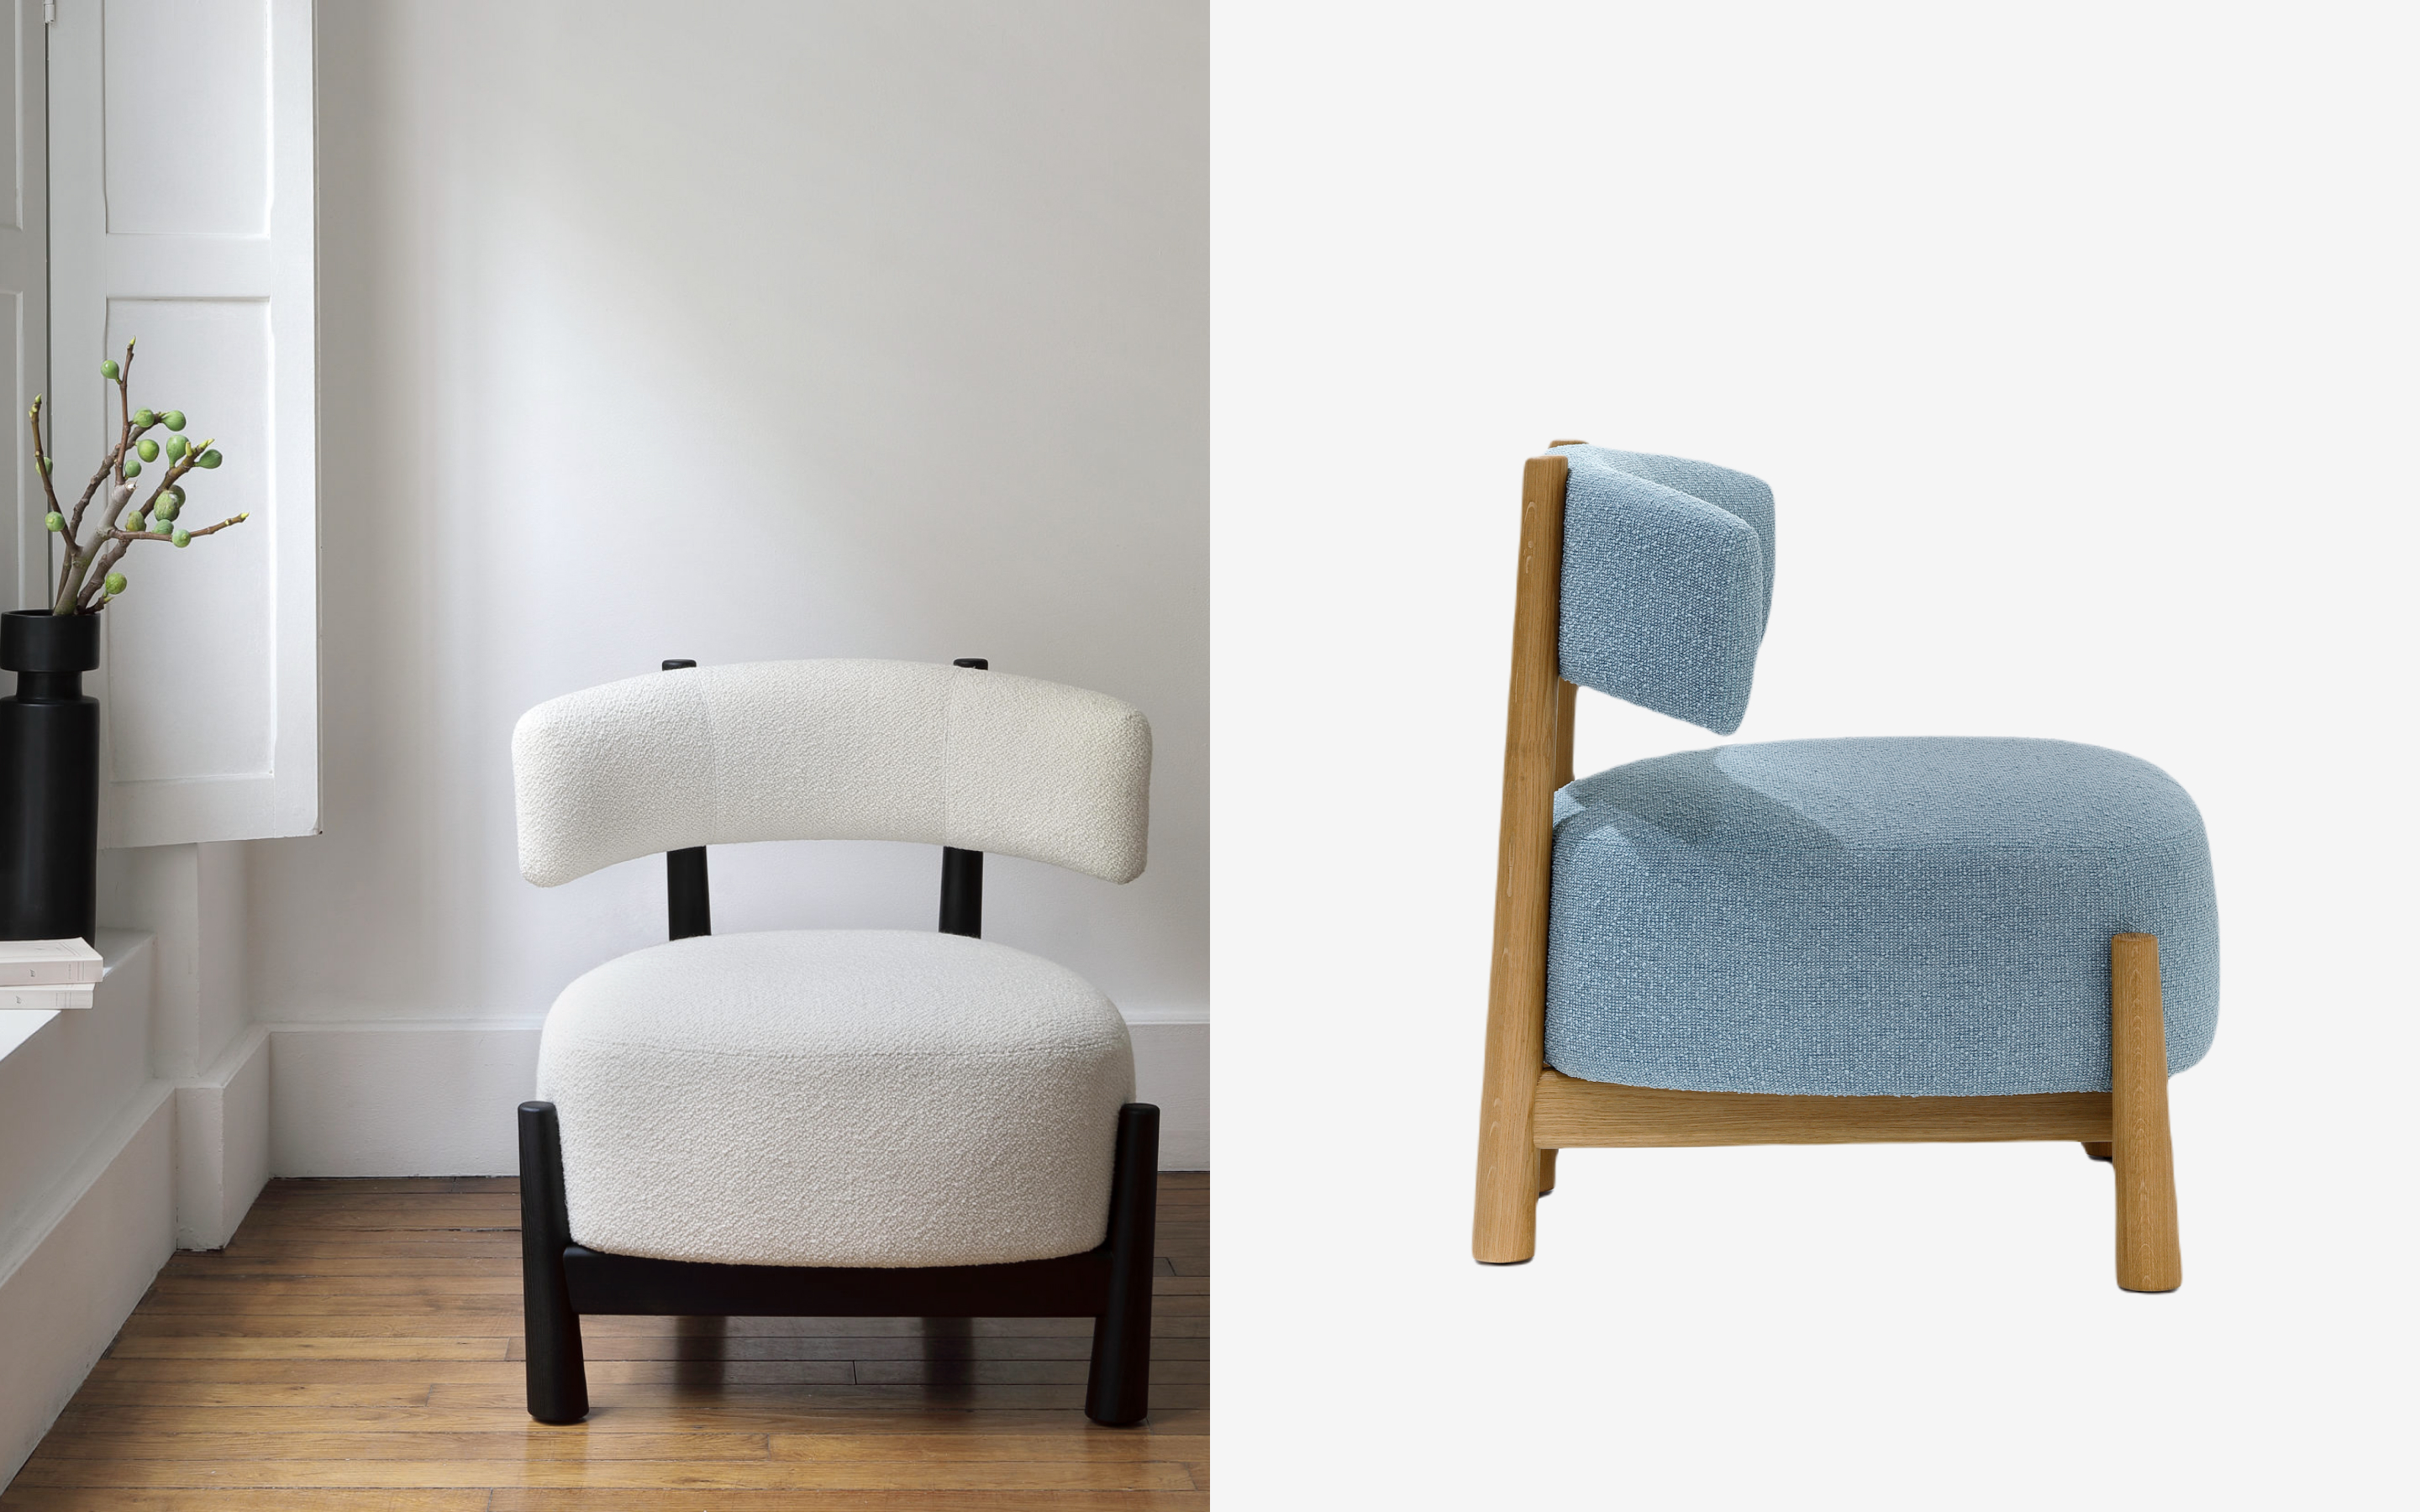 Dalyca lounge chair with curved upholstered backrest in white and blue